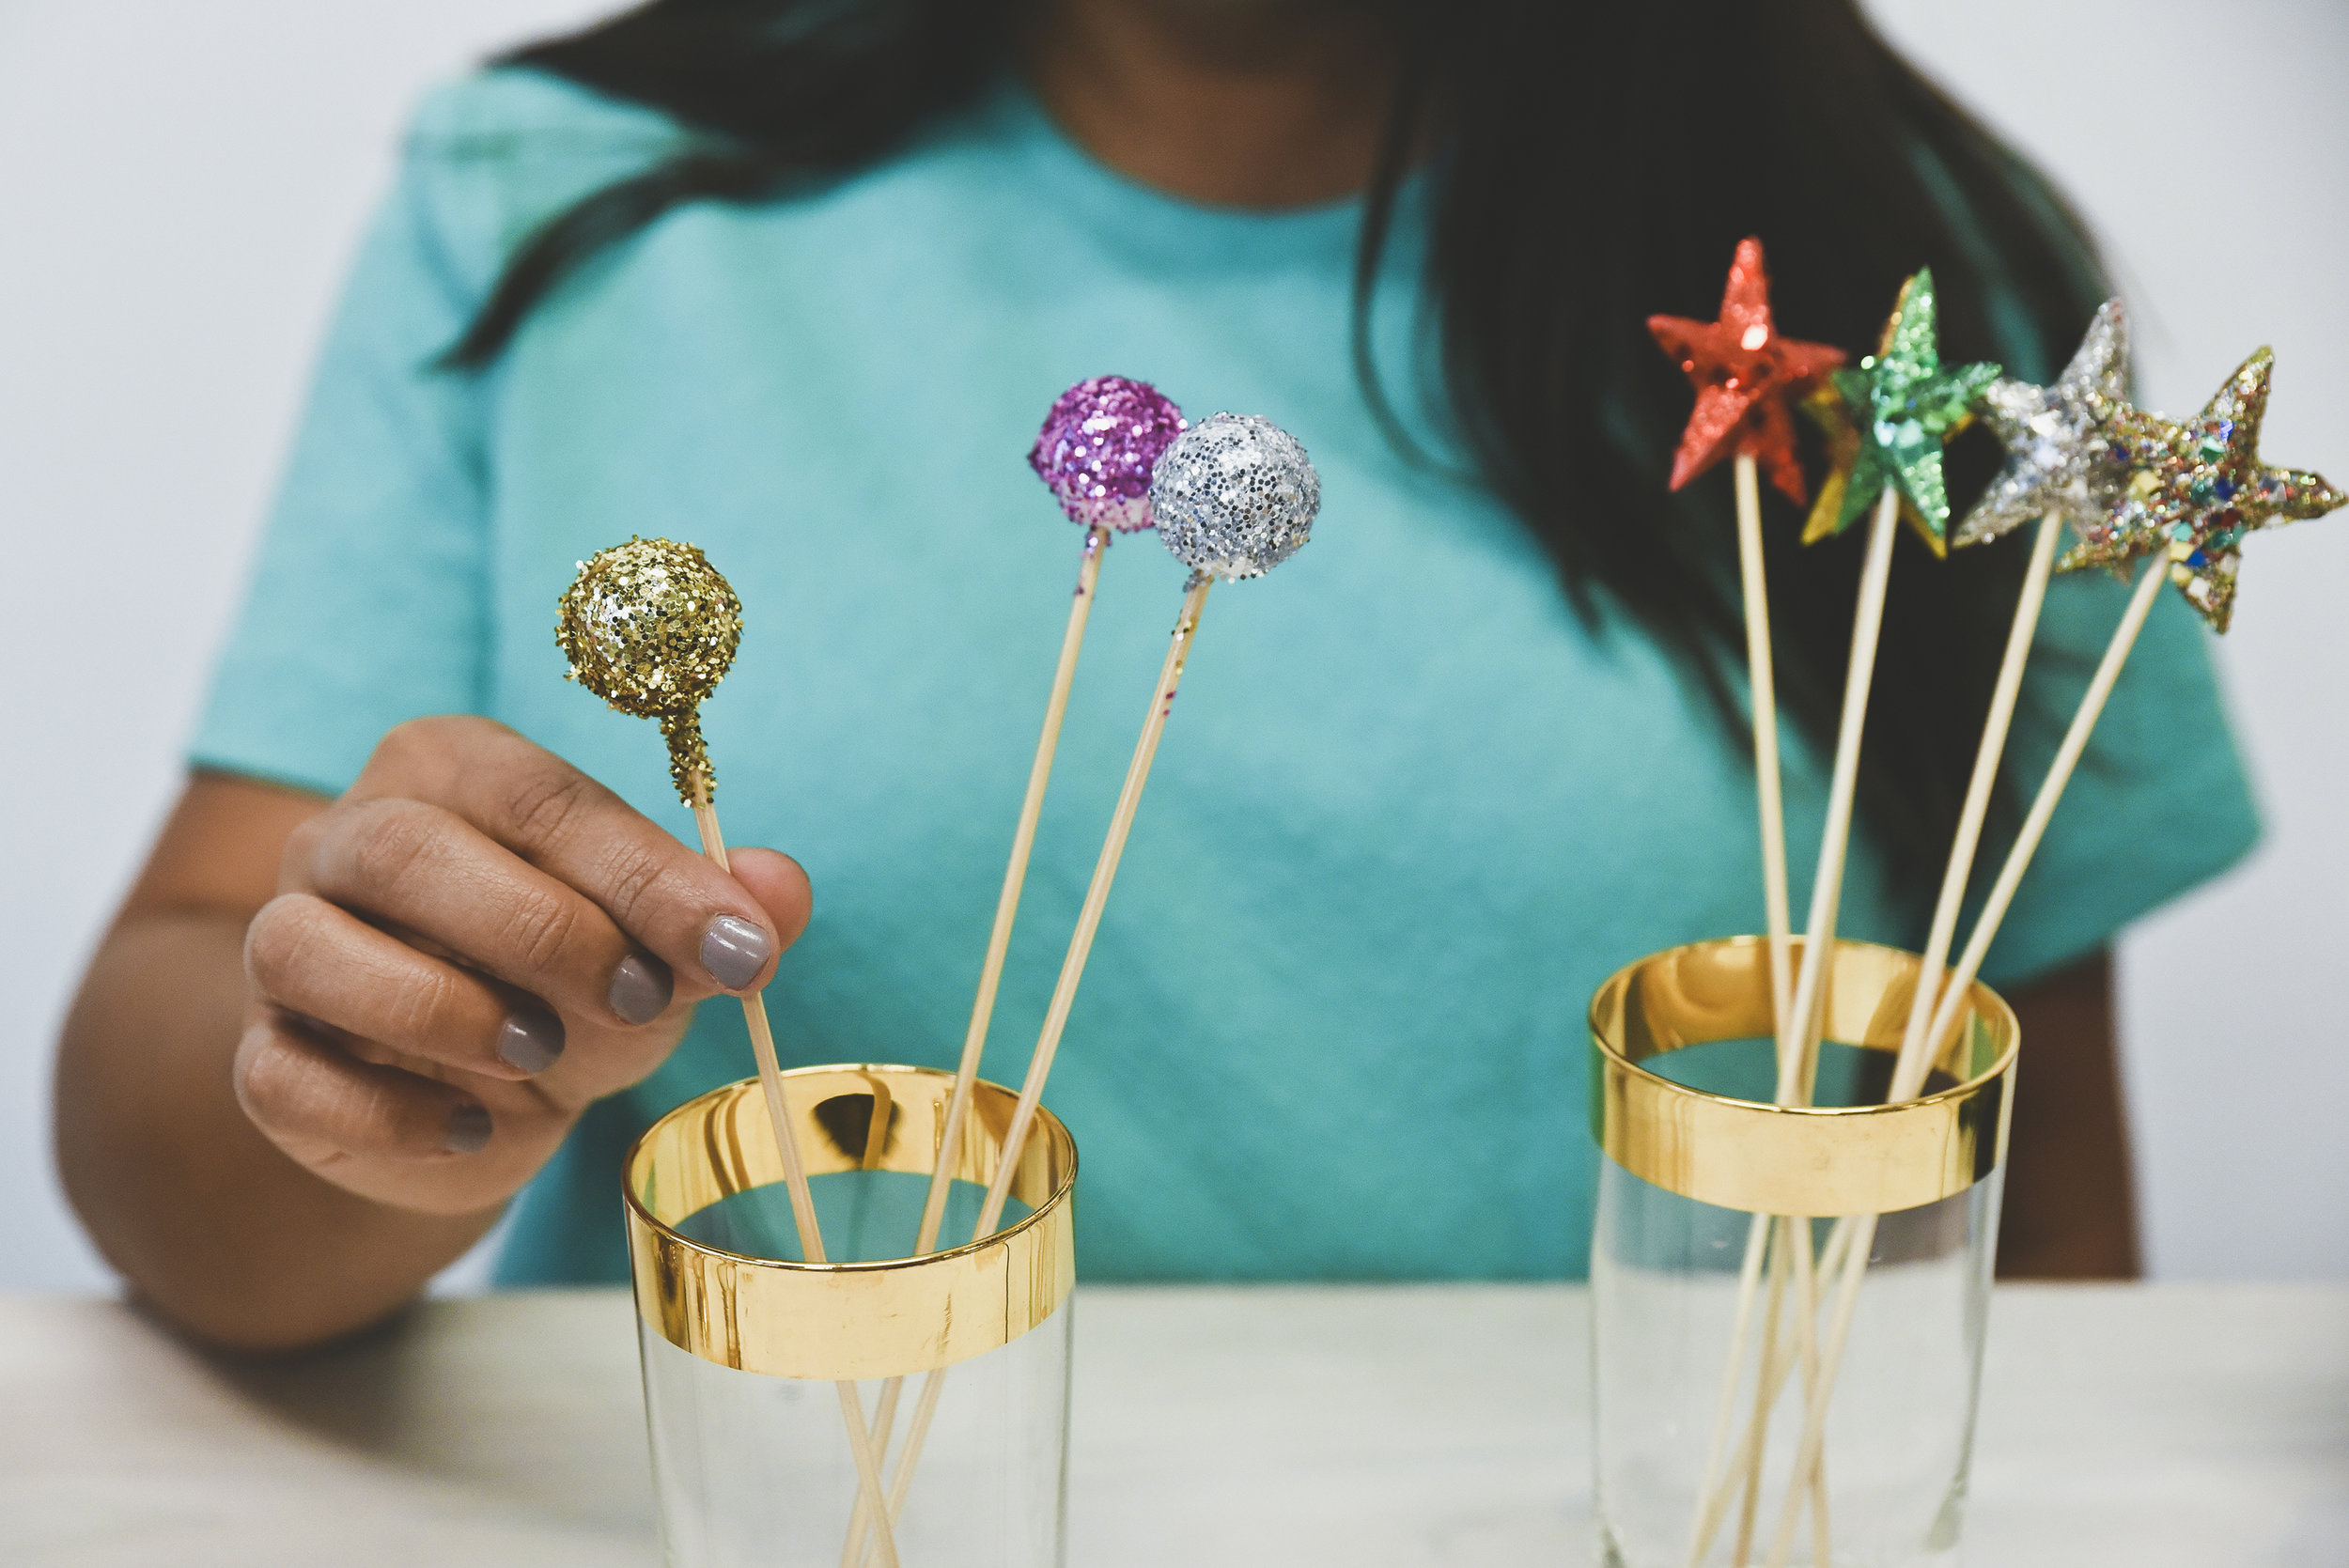 Star swizzle sticks from All Things For You and dress from Ode Vintage